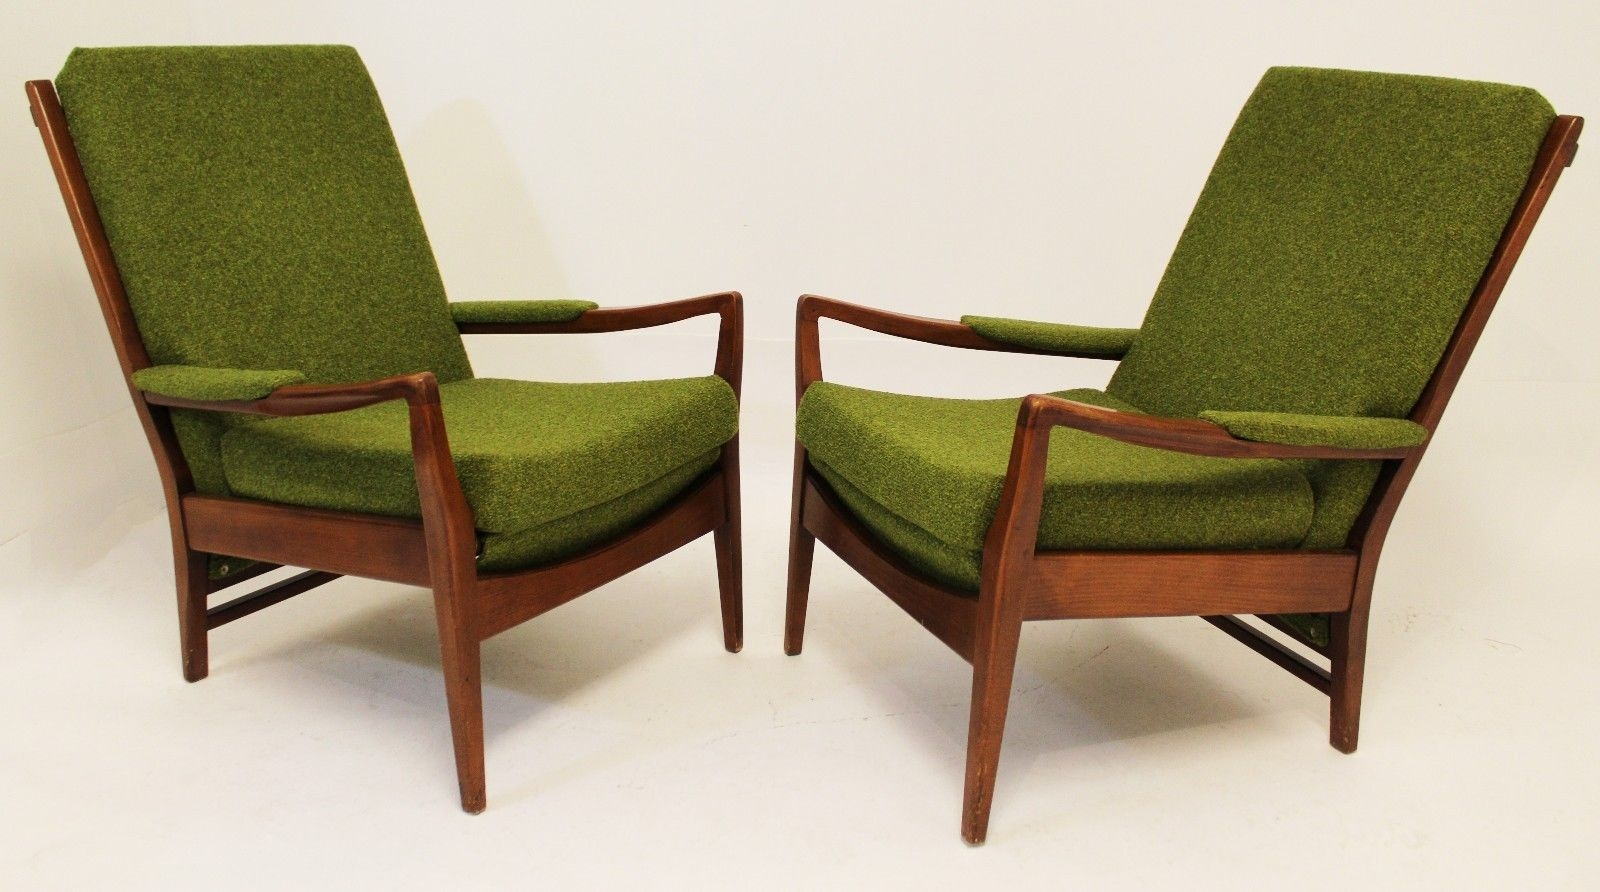 Remarkable Best Cintique Mid Century Armchairs In Mid Century Modern Pair Of Cintique Walnut Chairs English Larsen (Image 13 of 15)